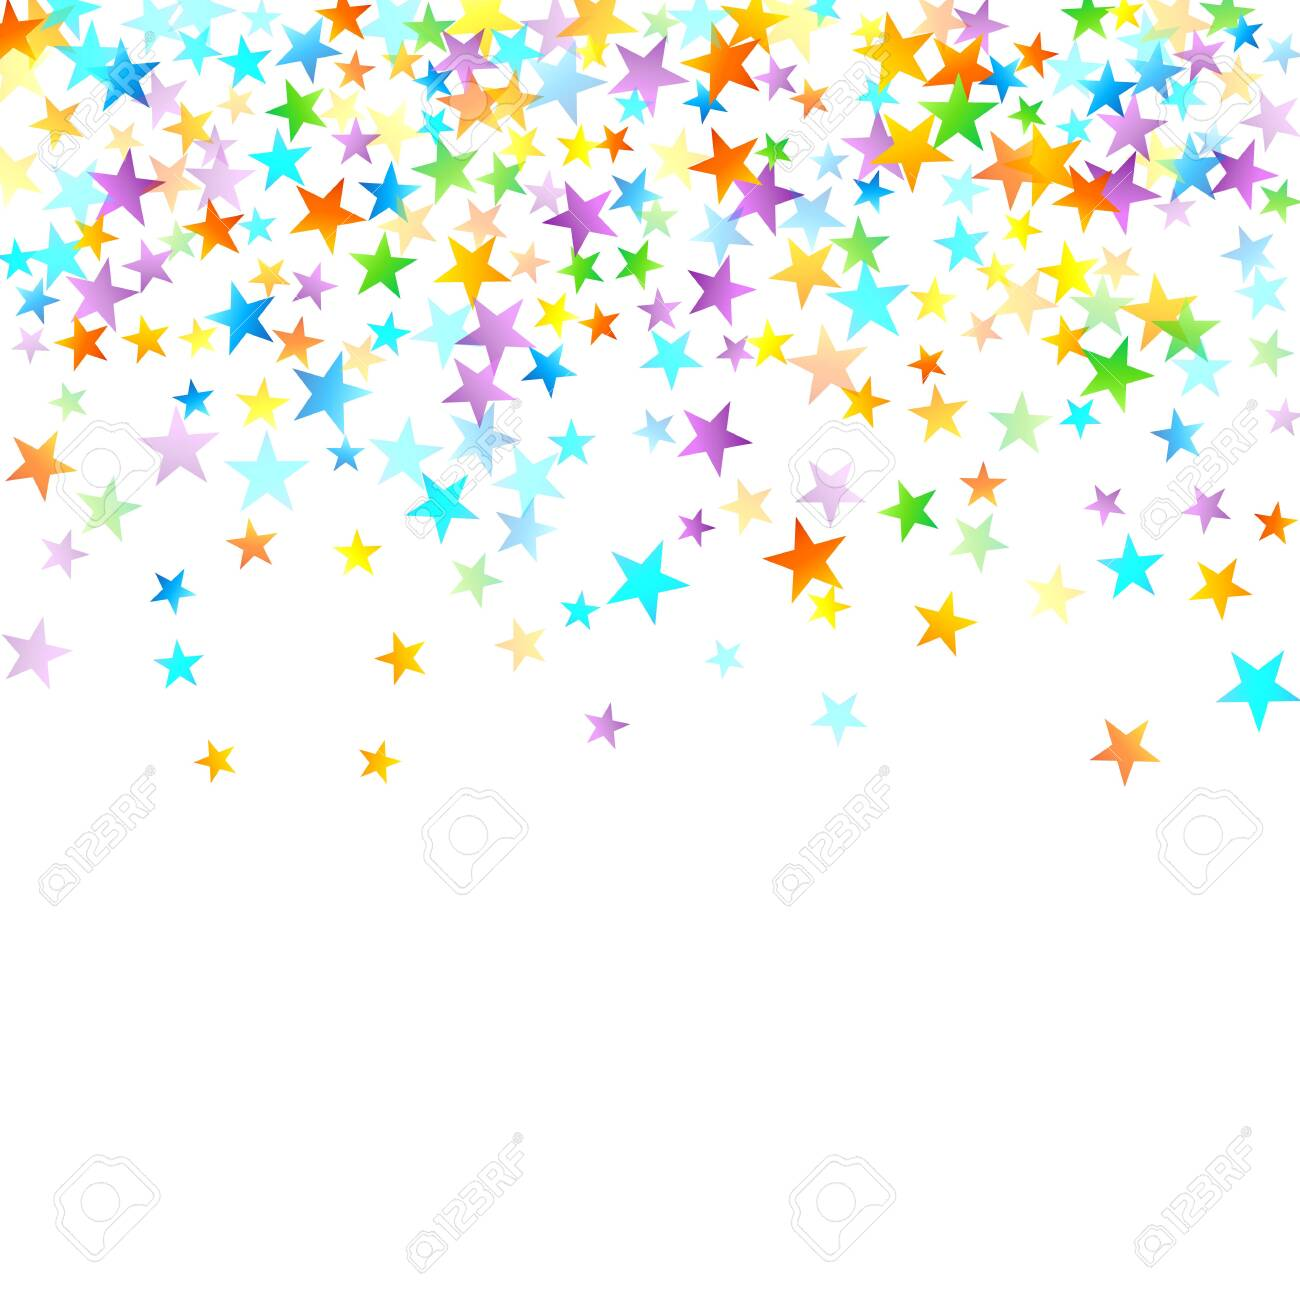 Rainbow Festive Confetti. Carnival Template. Colorful Star Falling. Beautiful Holidays Party. Little Tiny Multicolor Sprockets on White Background. Bright Vector Illustration. - 145556992